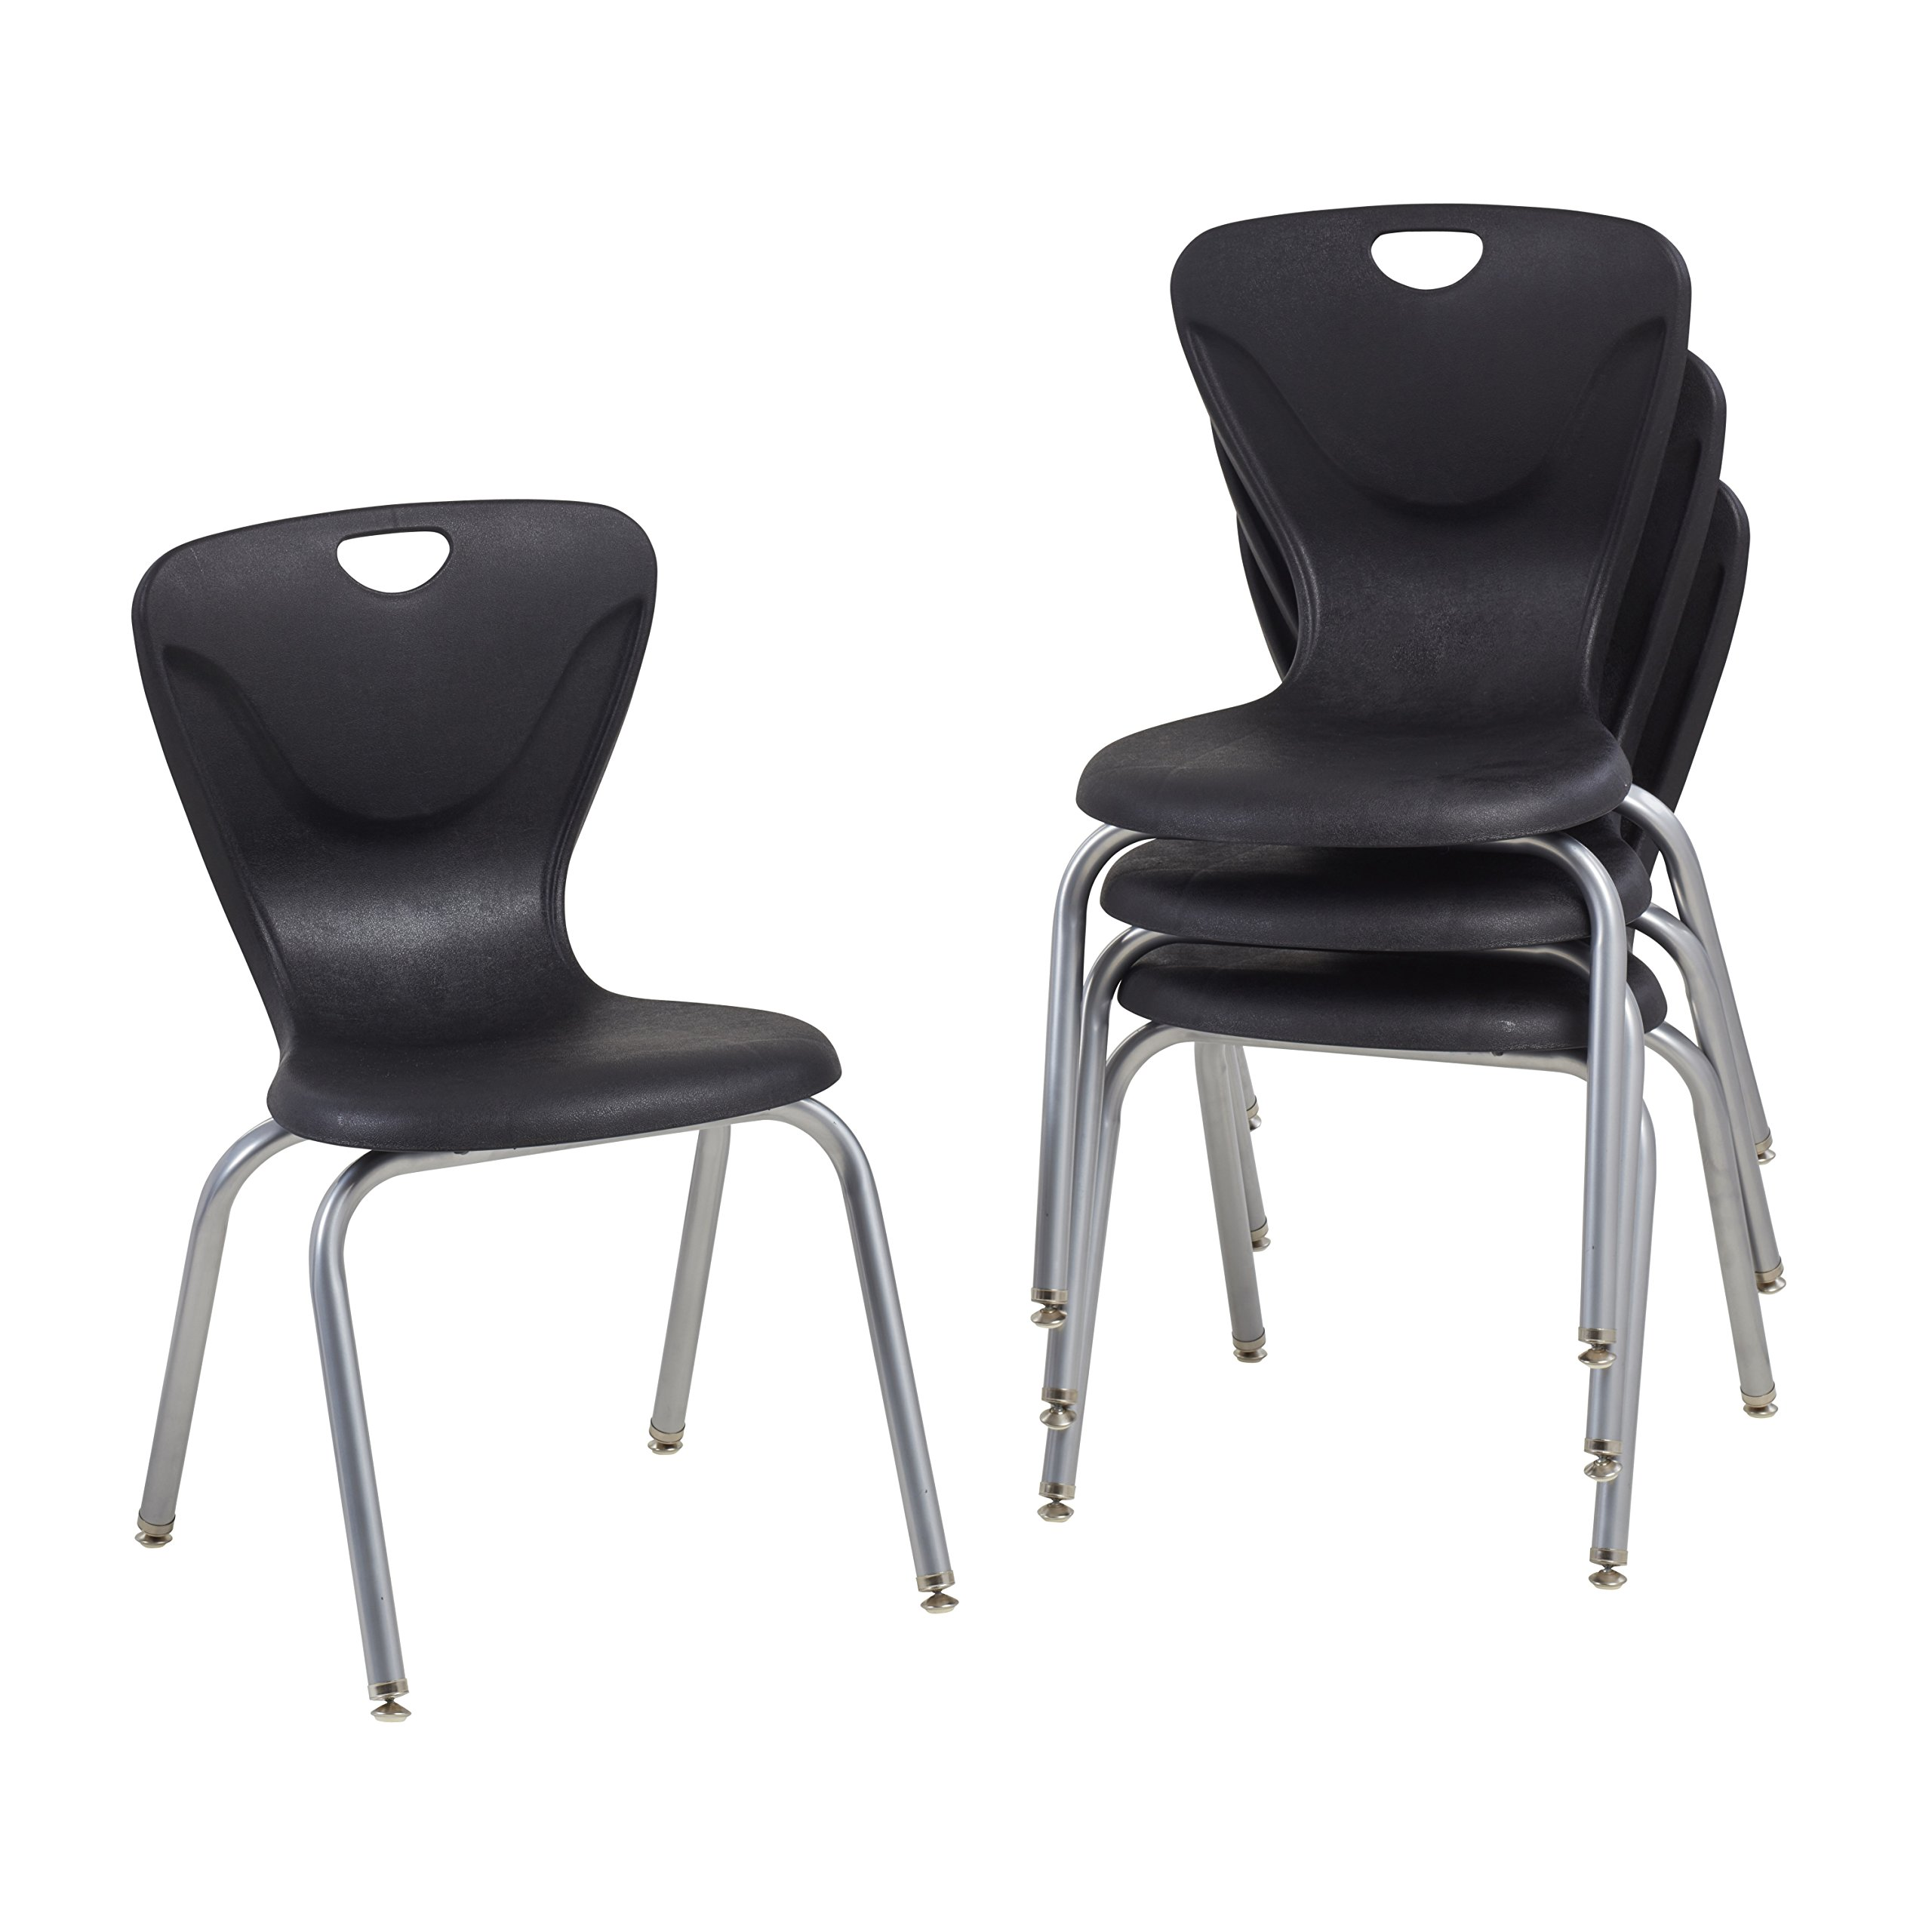 ECR4Kids 18'' Contour School Stacking Student Chair, Molded, Black (Set of 4)